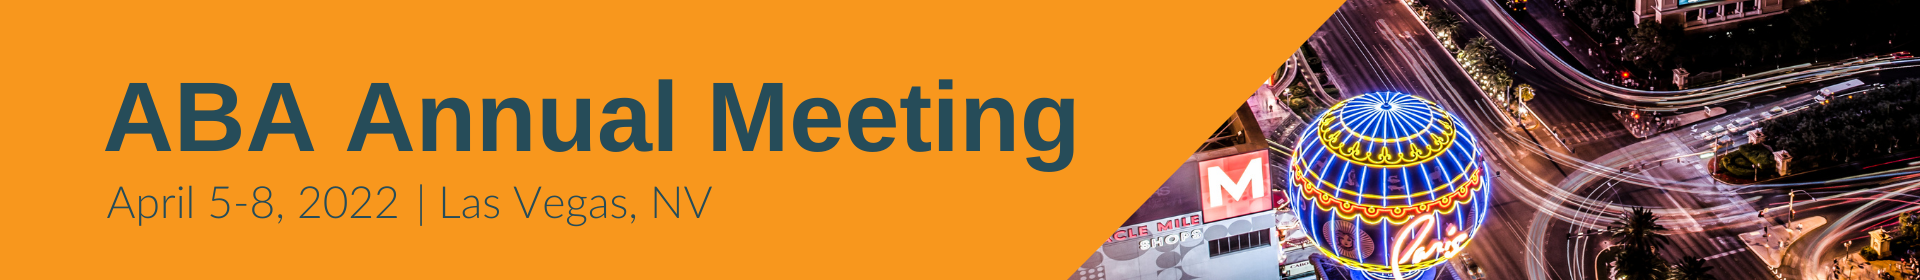 2022 ABA Annual Meeting Forum and Symposia Proposals Event Banner